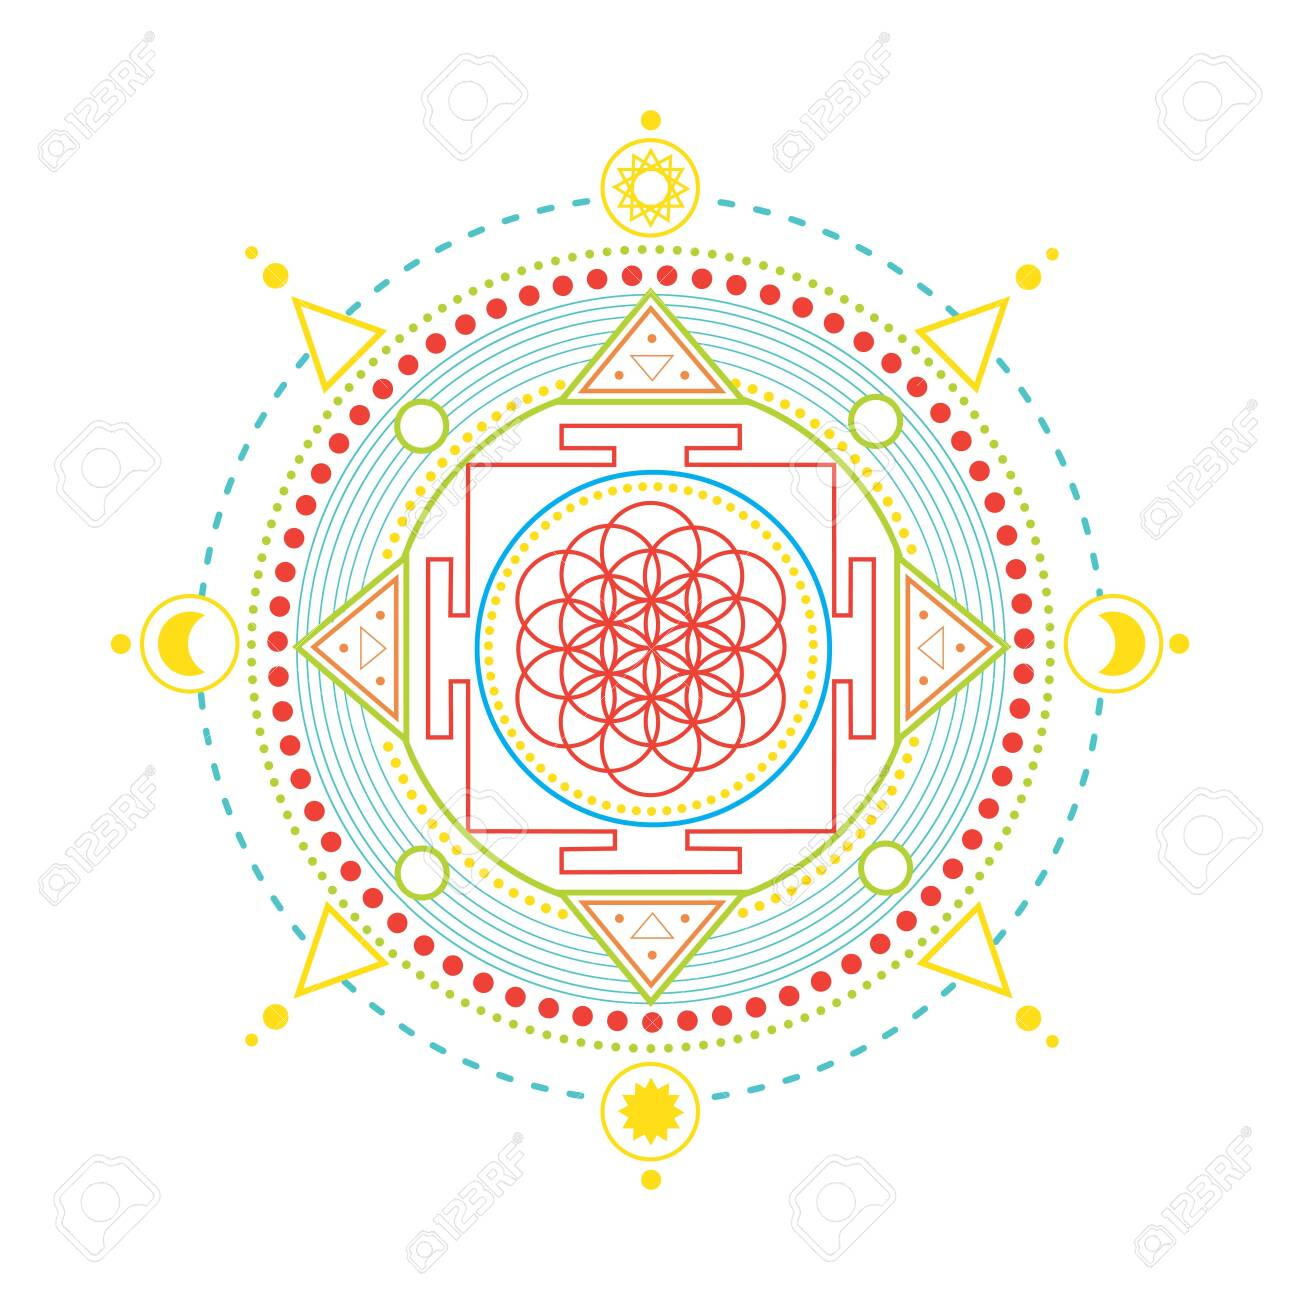 vector gold monochrome design abstract mandala flower of life sacred geometric shape illustration Flower of life, ethnic zentangled henna tattoo, patterned Indian paisley for adult anti stress coloring pages. - 145753029